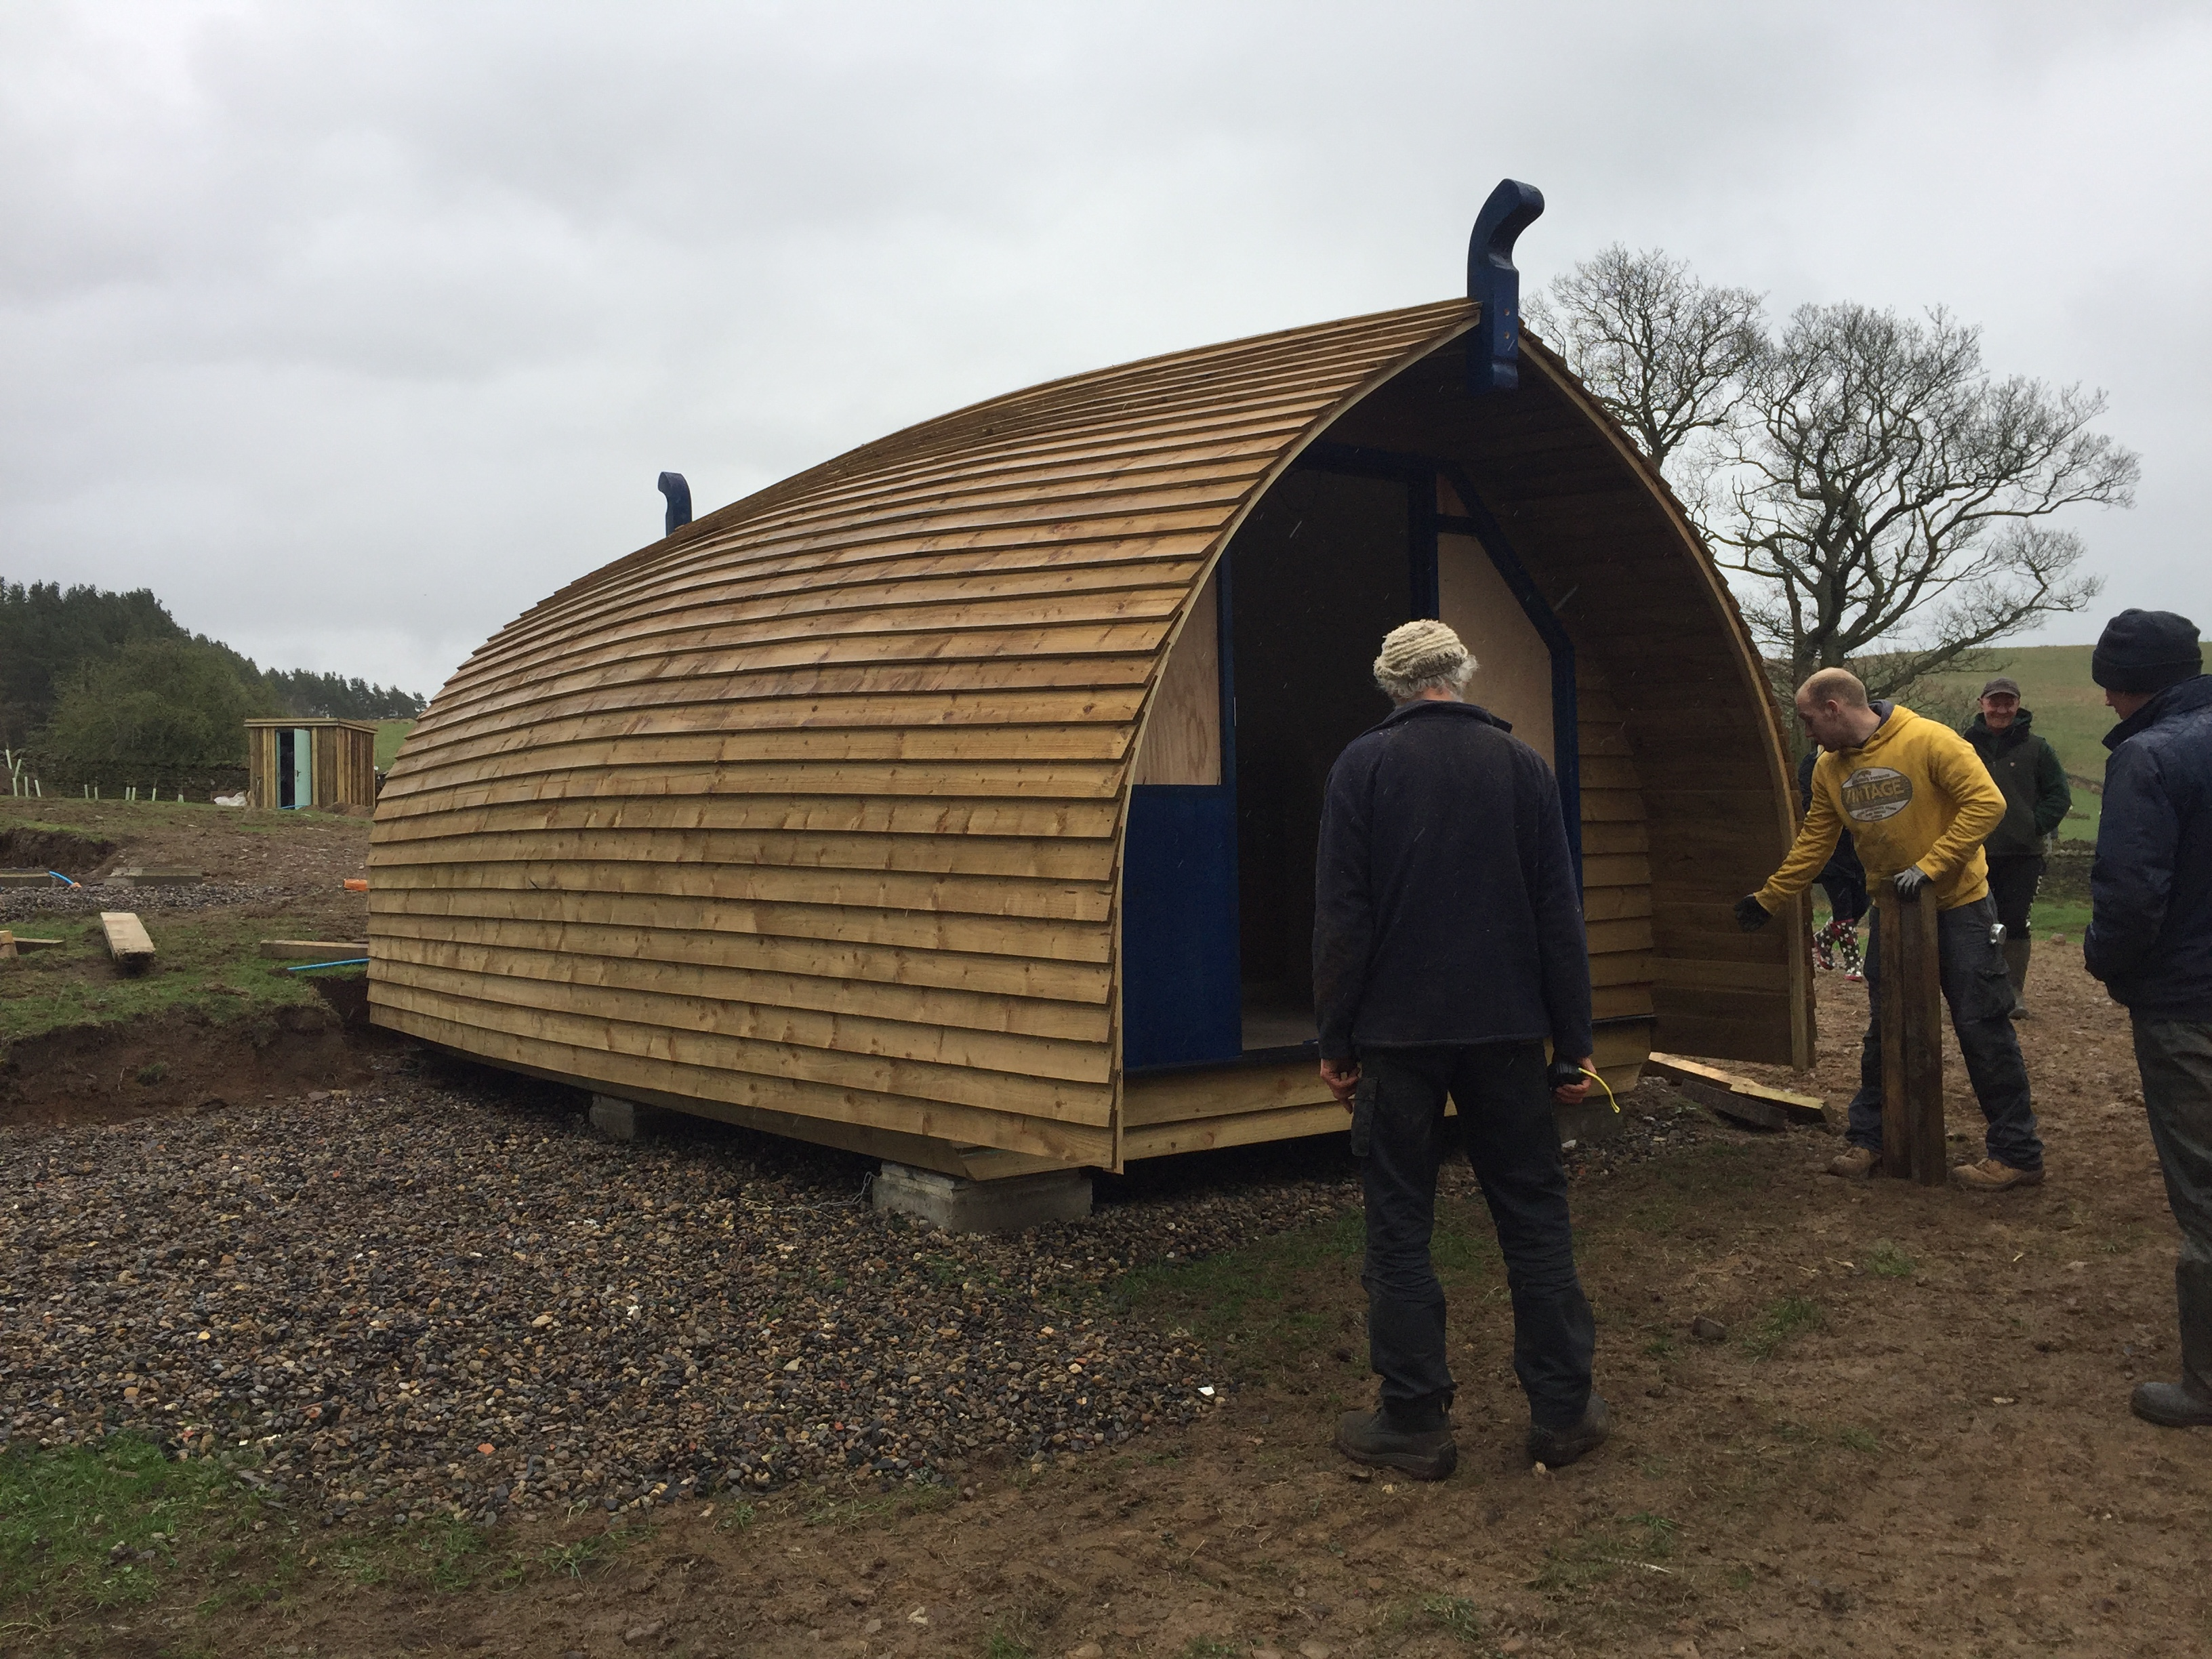 People putting the glamping cabin in place